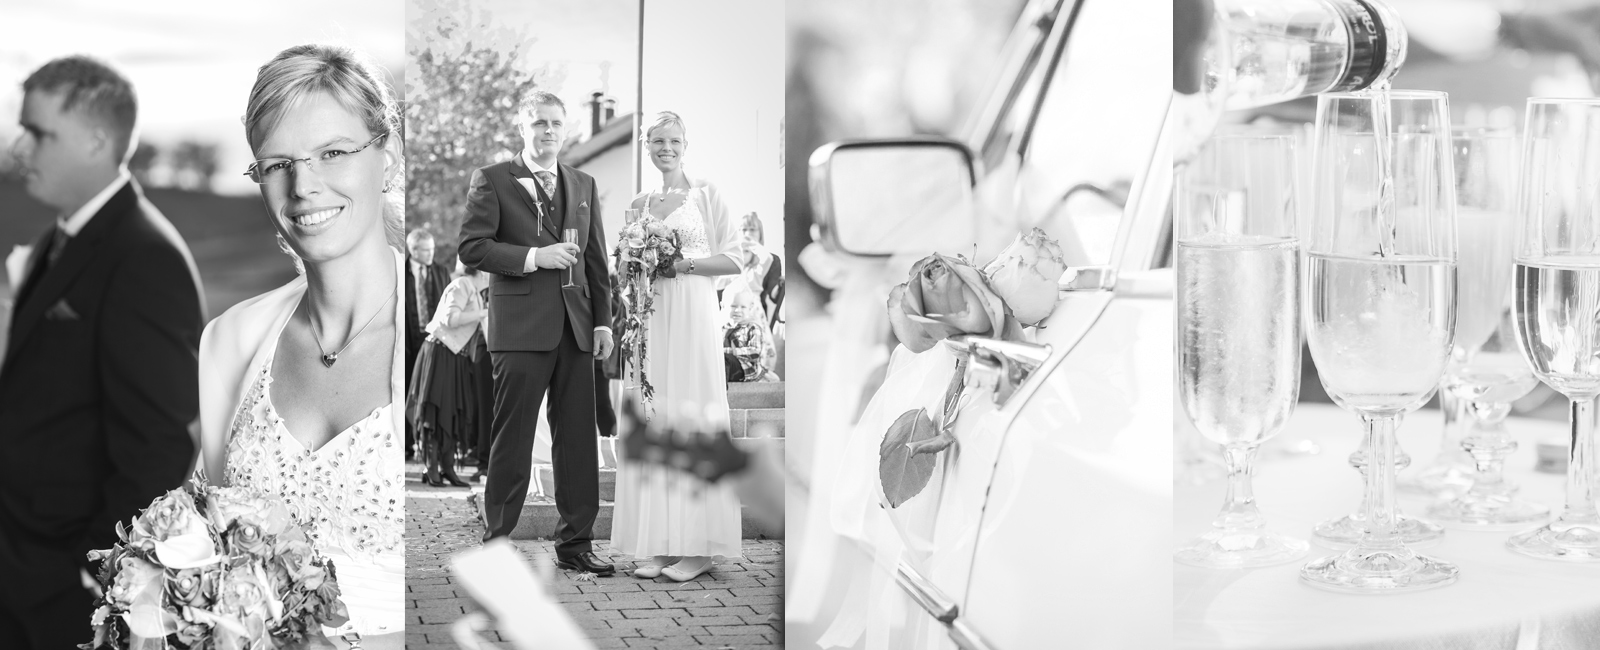 The right moment - Professioneller Hochzeitsfotograf Header